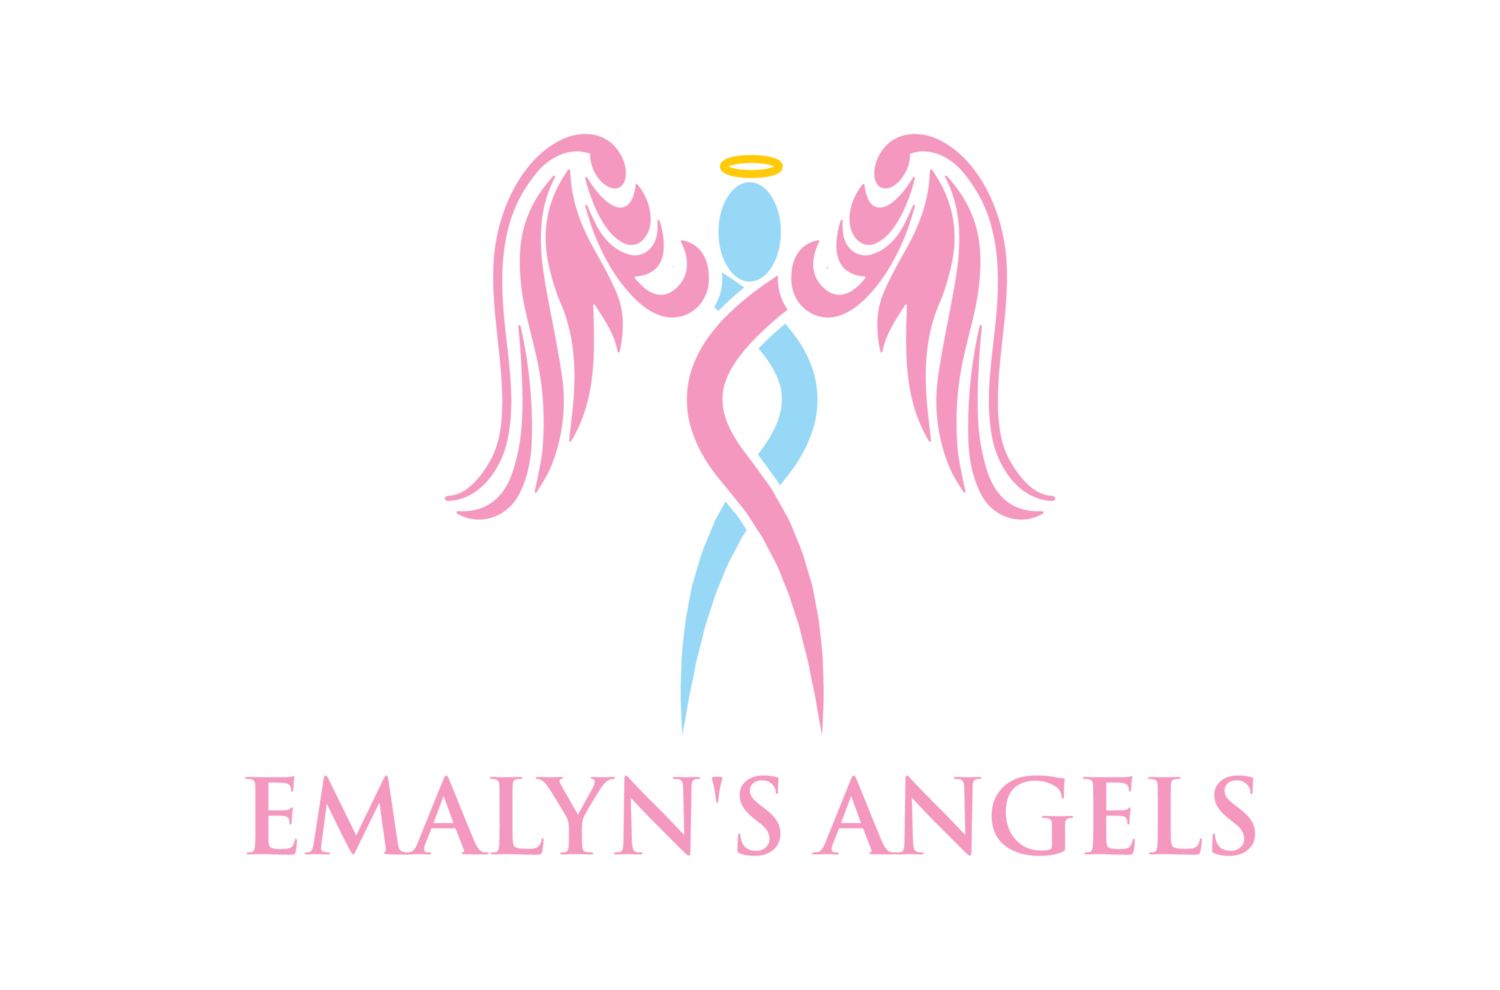 Emalyn's Angels